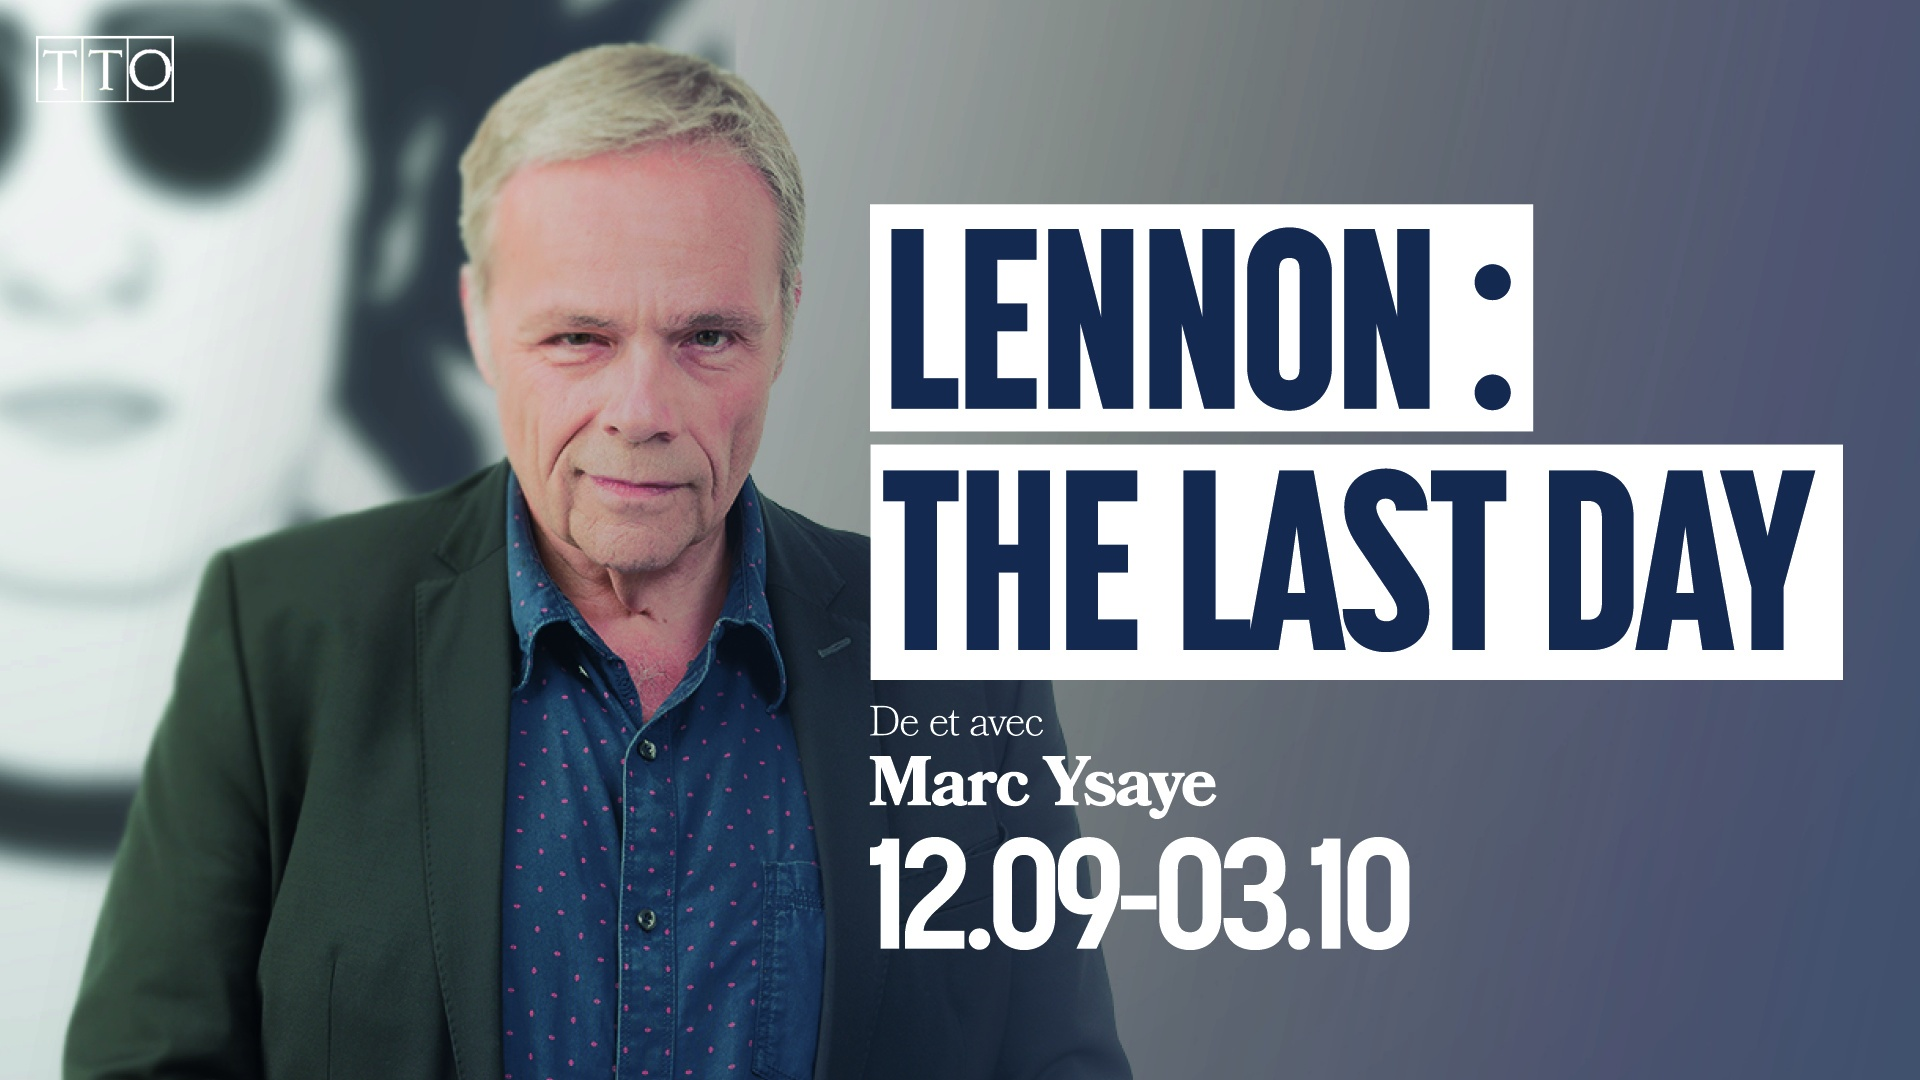 Lennon : The Last Day